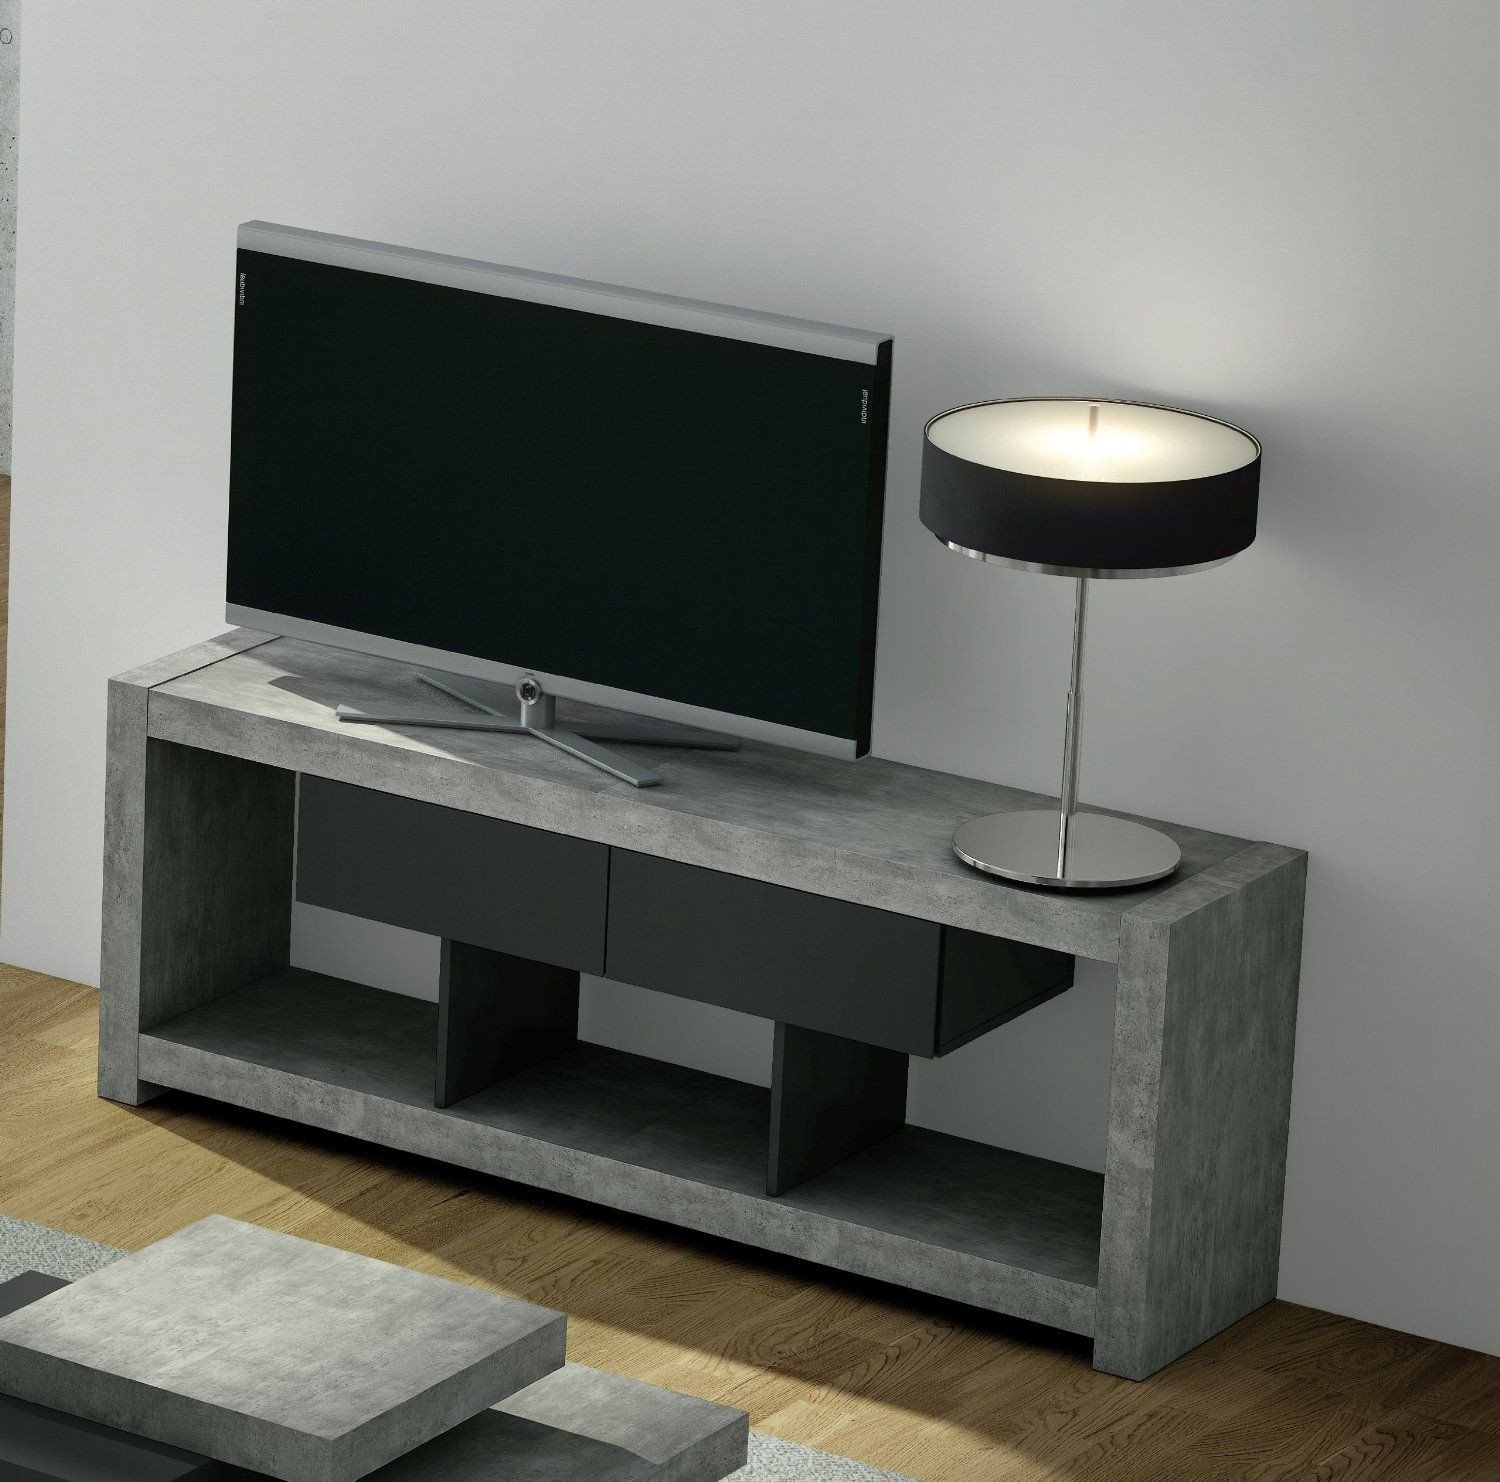 Table for Tv In Bedroom Beautiful Temahome Concrete Tv Stand